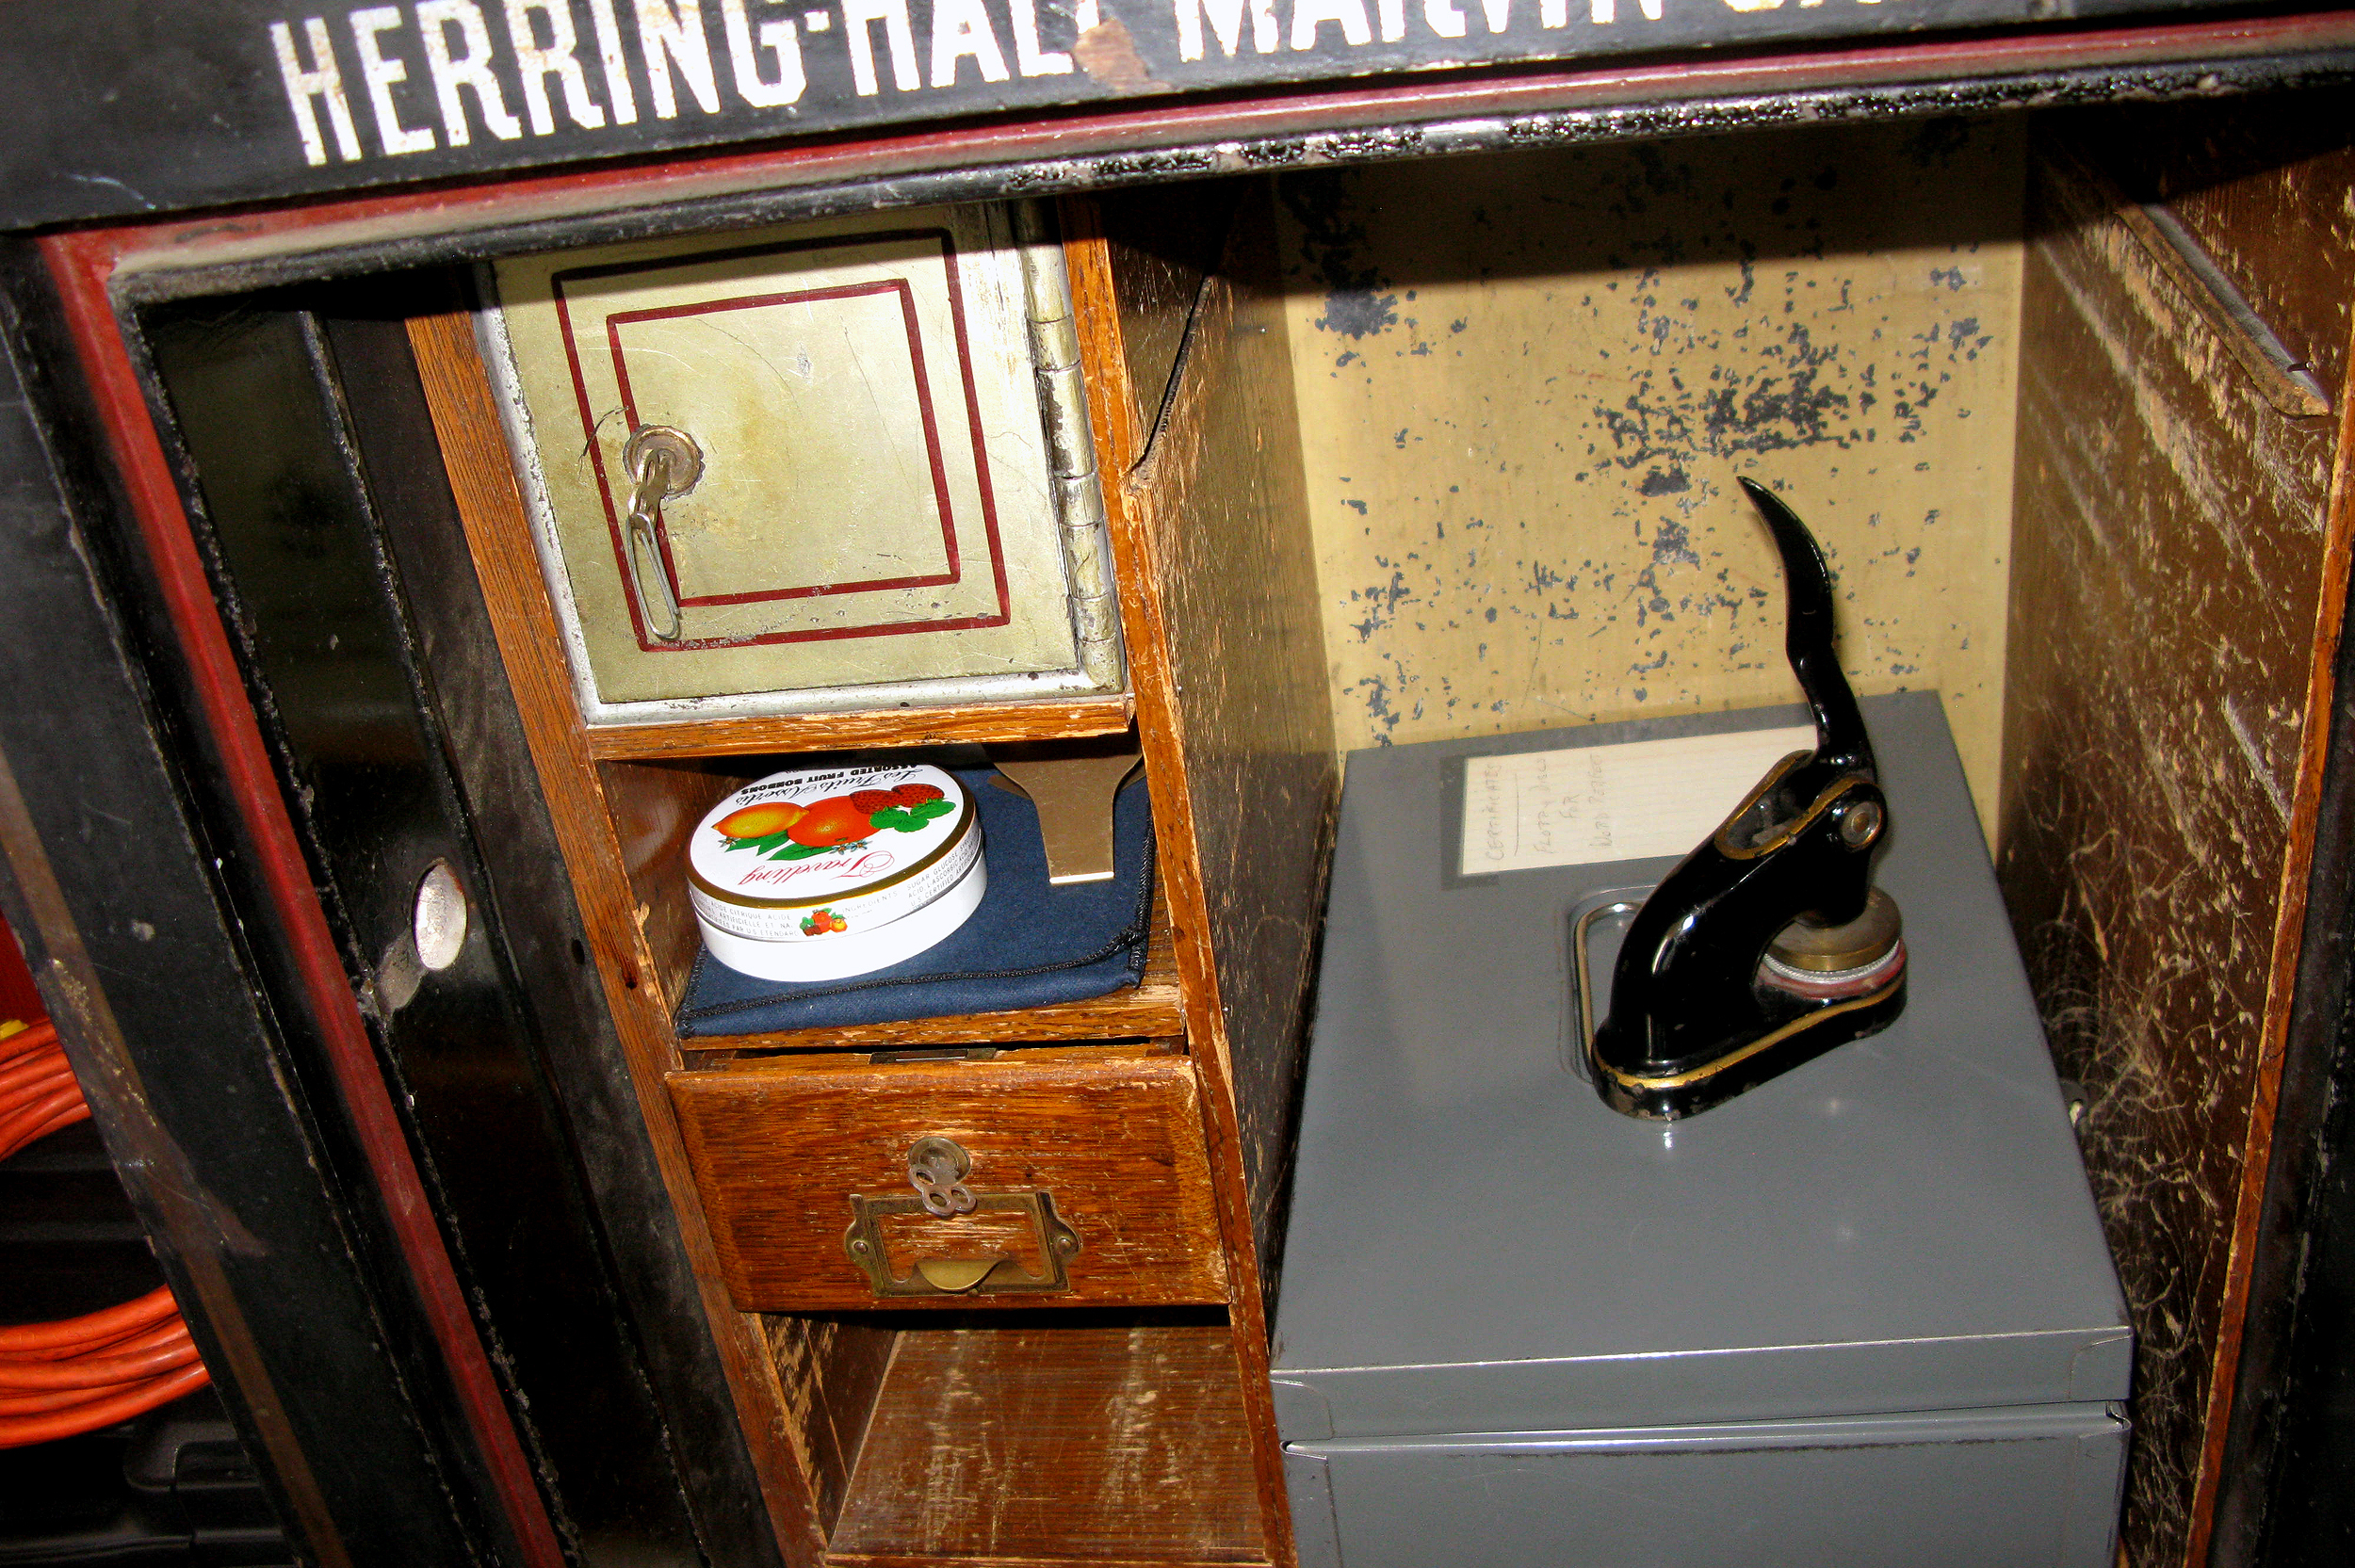 Among the many items inside the safe was a change purse filled with various world coins, a wooden stamp, documents from the 1930s, '40s and '50s, as well as a Smithsonian replica of the gavel originally used by Susan B. Anthony.